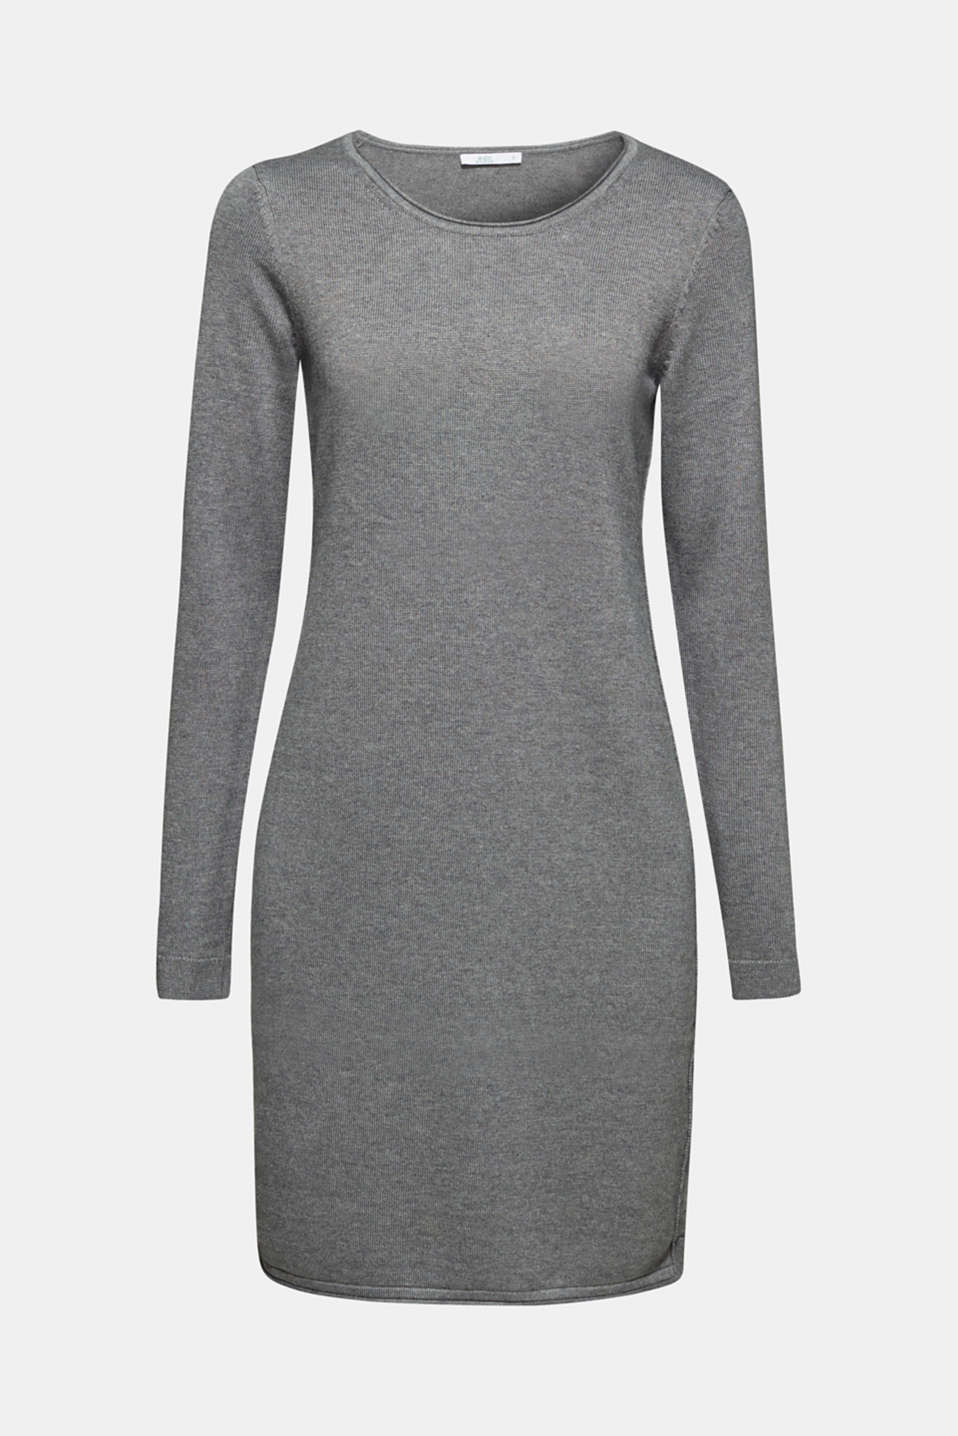 Knitted dress in a basic look, GUNMETAL 5, detail image number 5